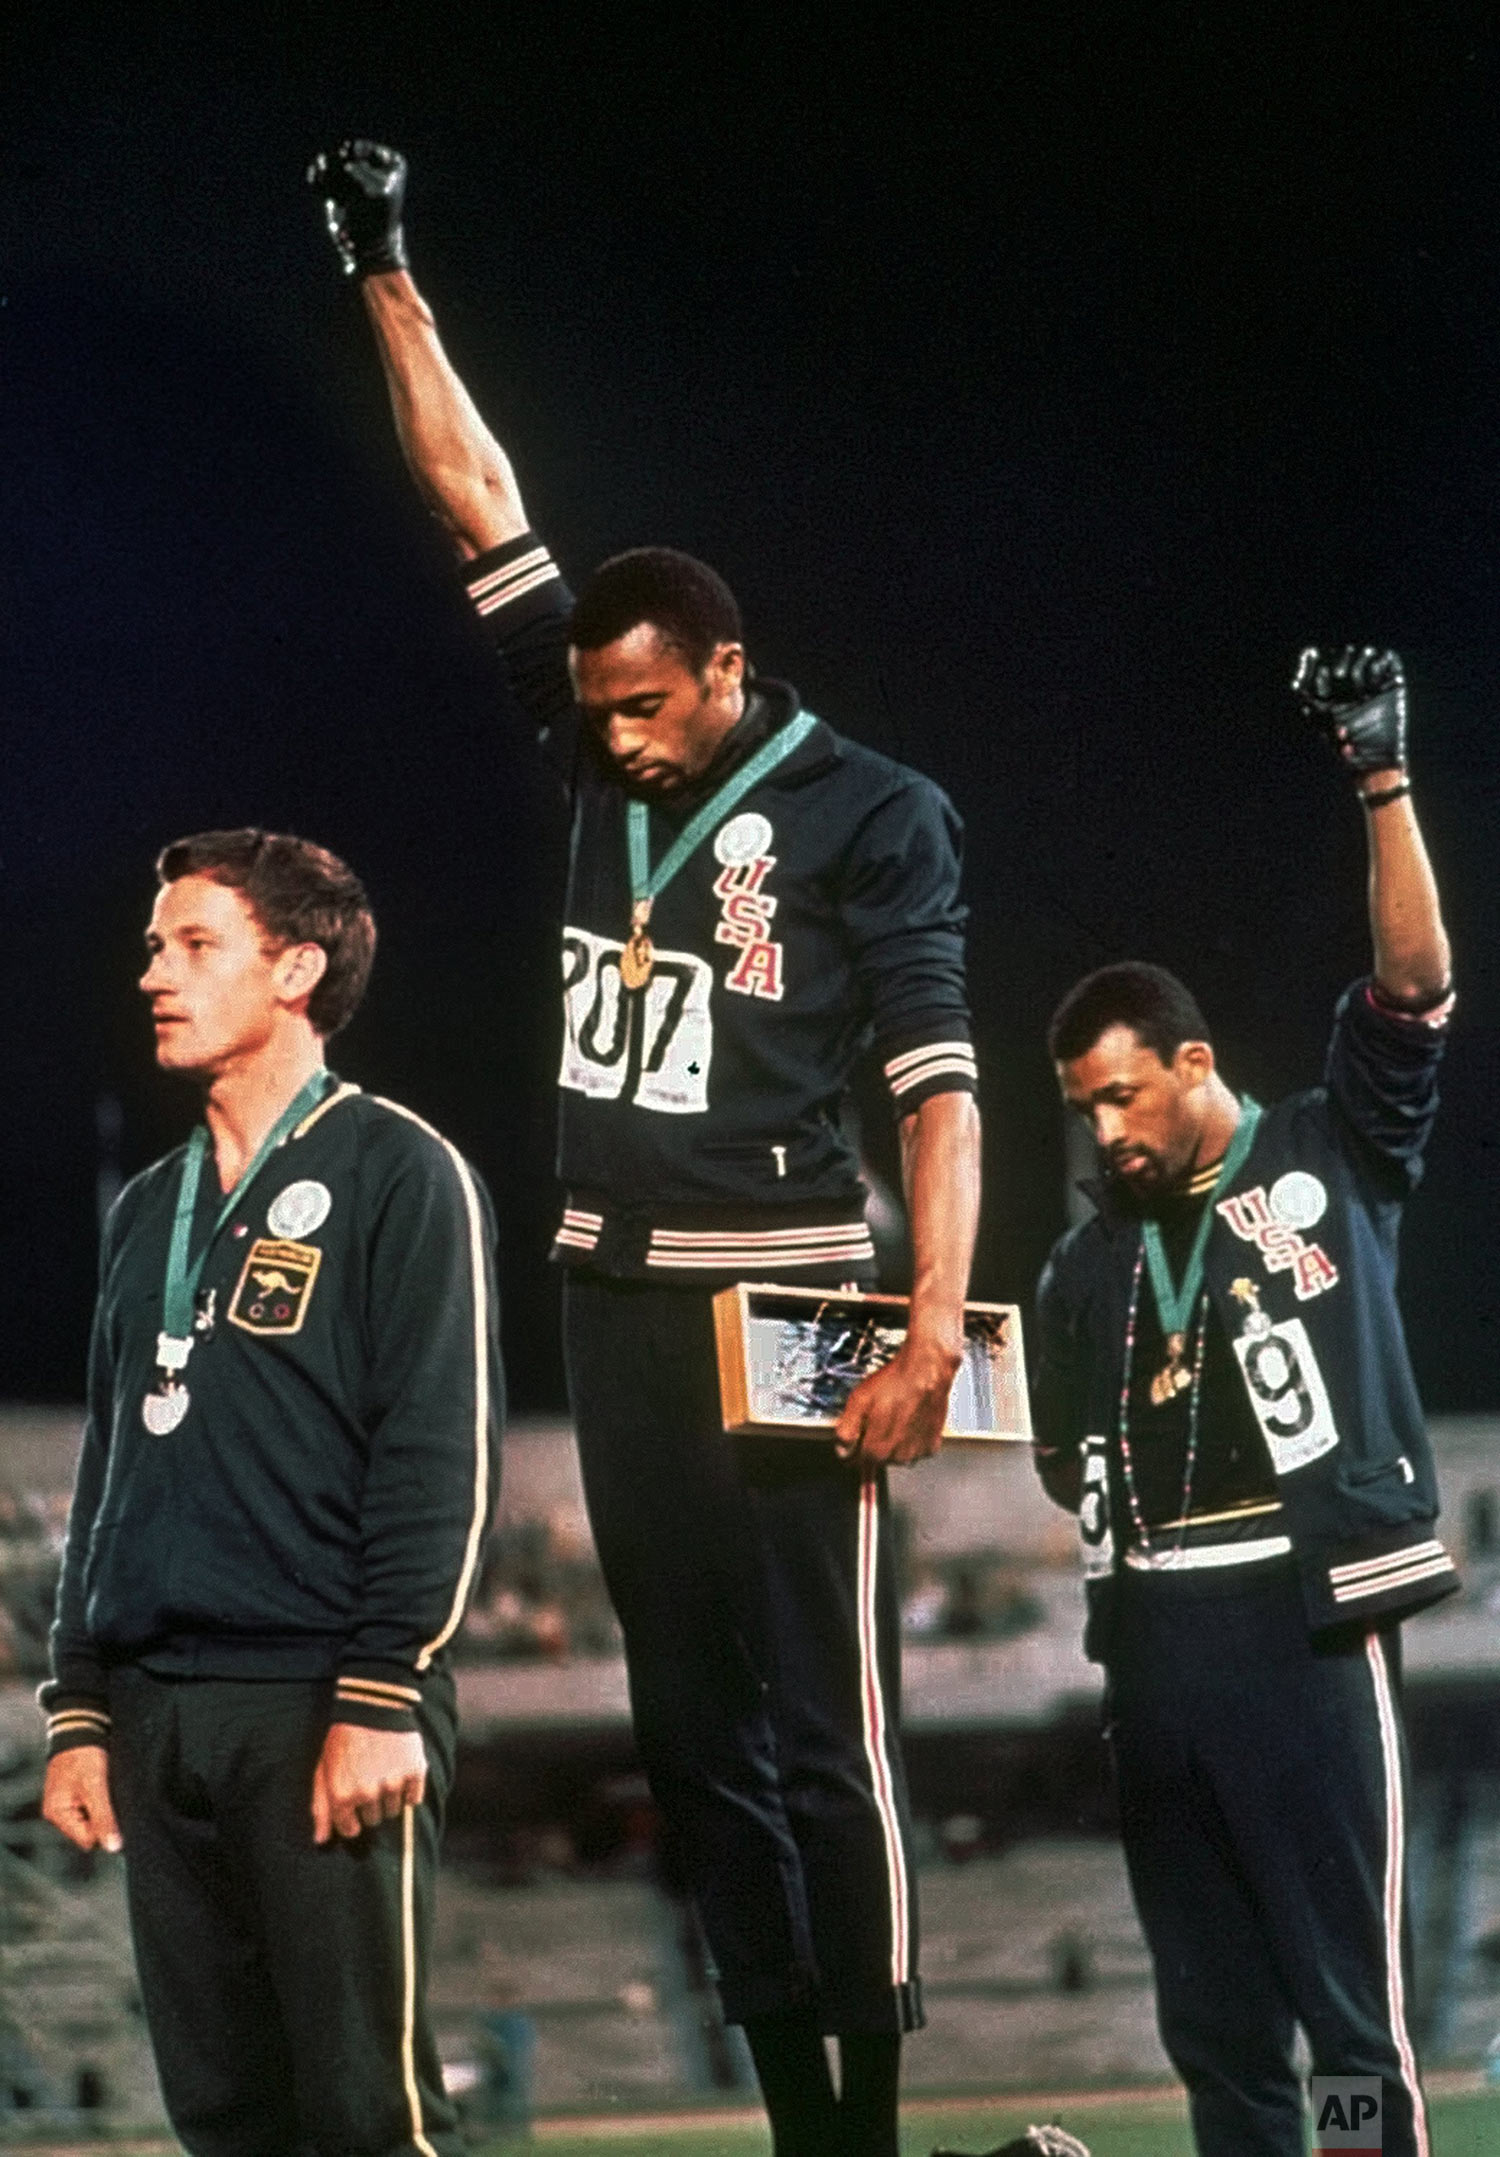 Olympic Salute | Oct. 16, 1968